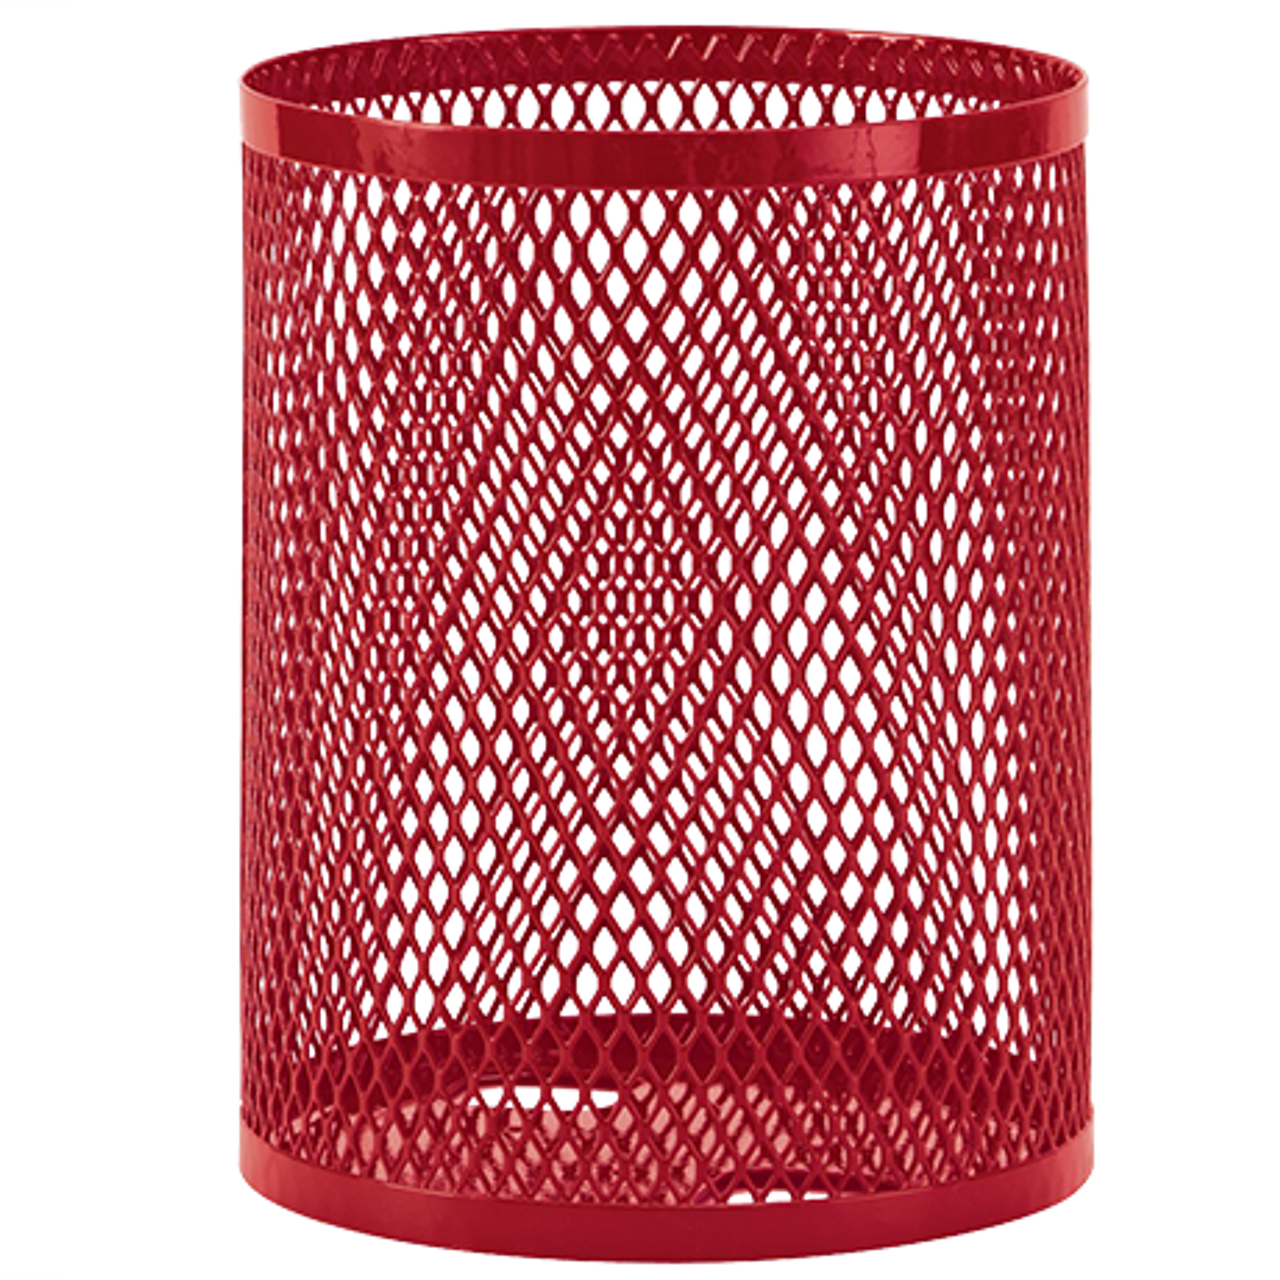 55 Gallon Ultra Site Metal Mesh Street Park Trash Can Red